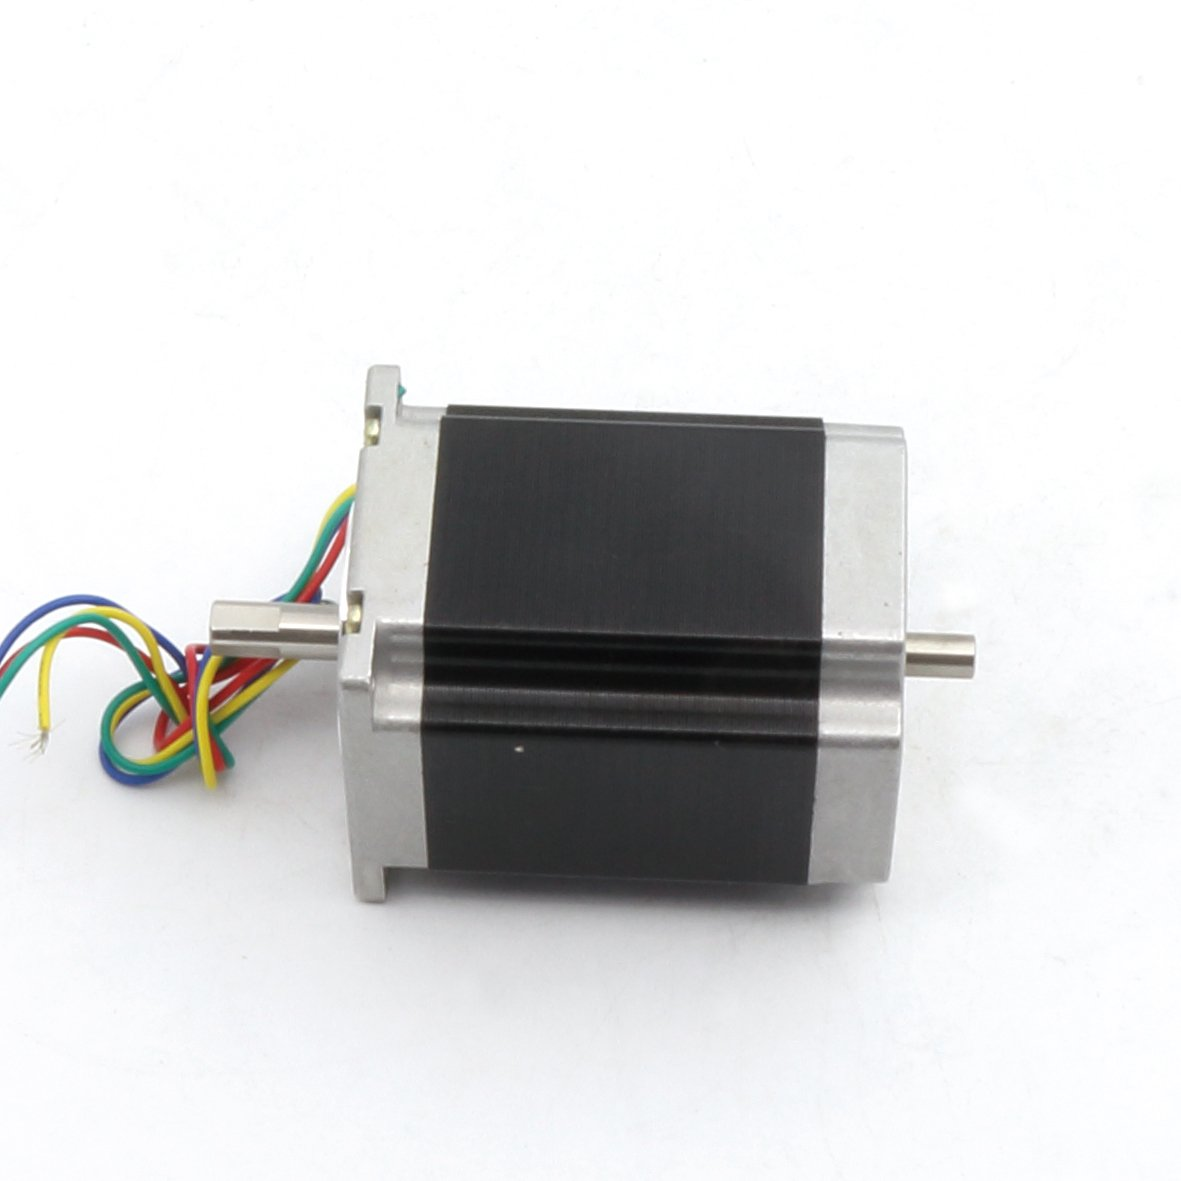 3 Axis Controller Kit Nema23 270oz In Cnc Stepper Motor Dual Shaft How To Wire Breaker Box Diagram 6 Color Codes 76mm 3a Tb6560 Driver 350w 24v Power Supply For Router